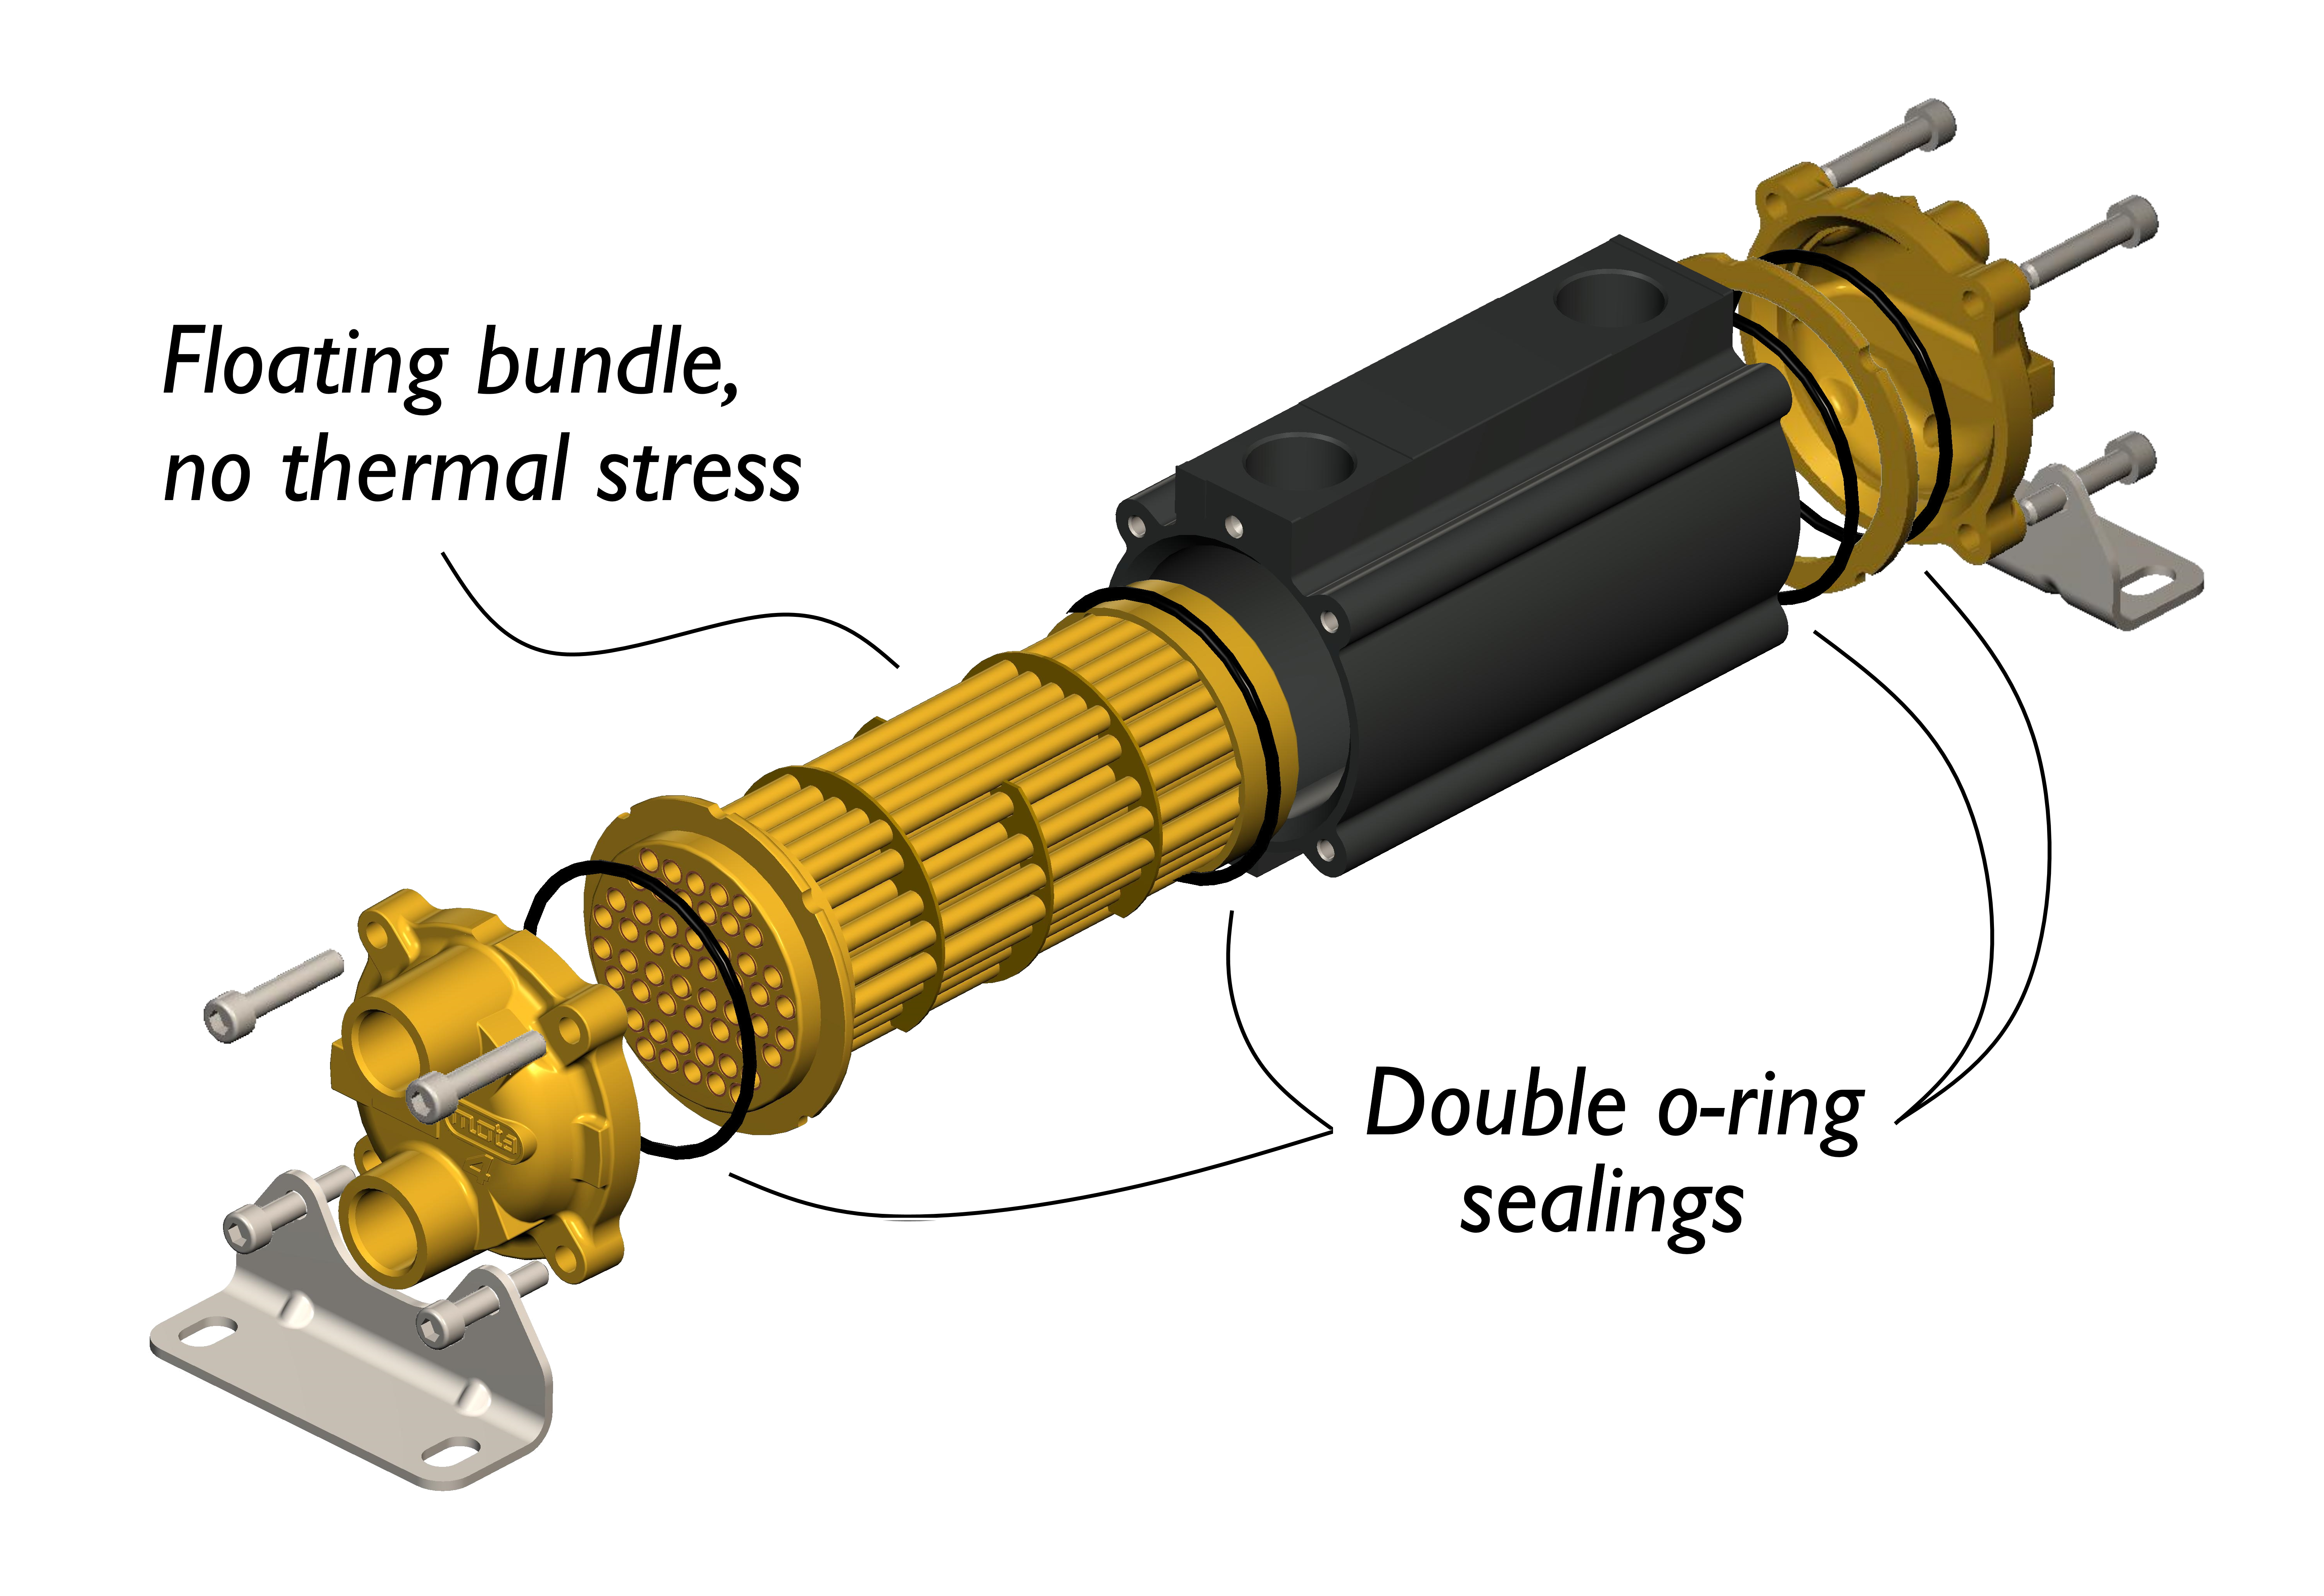 Optimized design for reliability: floating bundle and double o-ring sealings